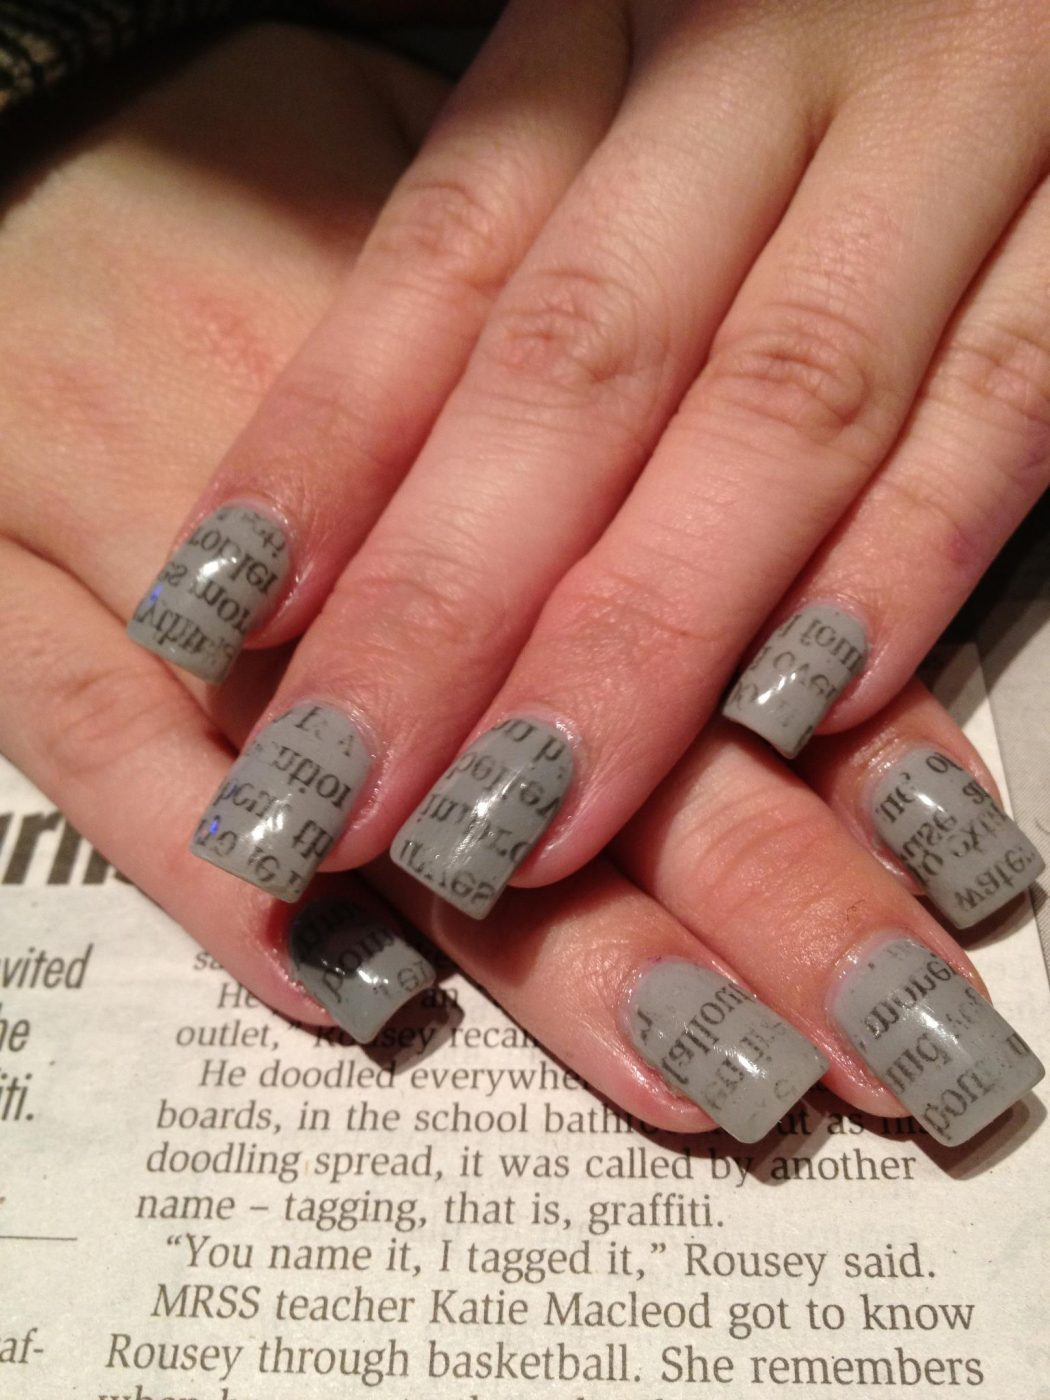 327222_222065437875527_100002162183494_486807_1156795406_o 20+ Creative Newspaper Nail Art Design Ideas